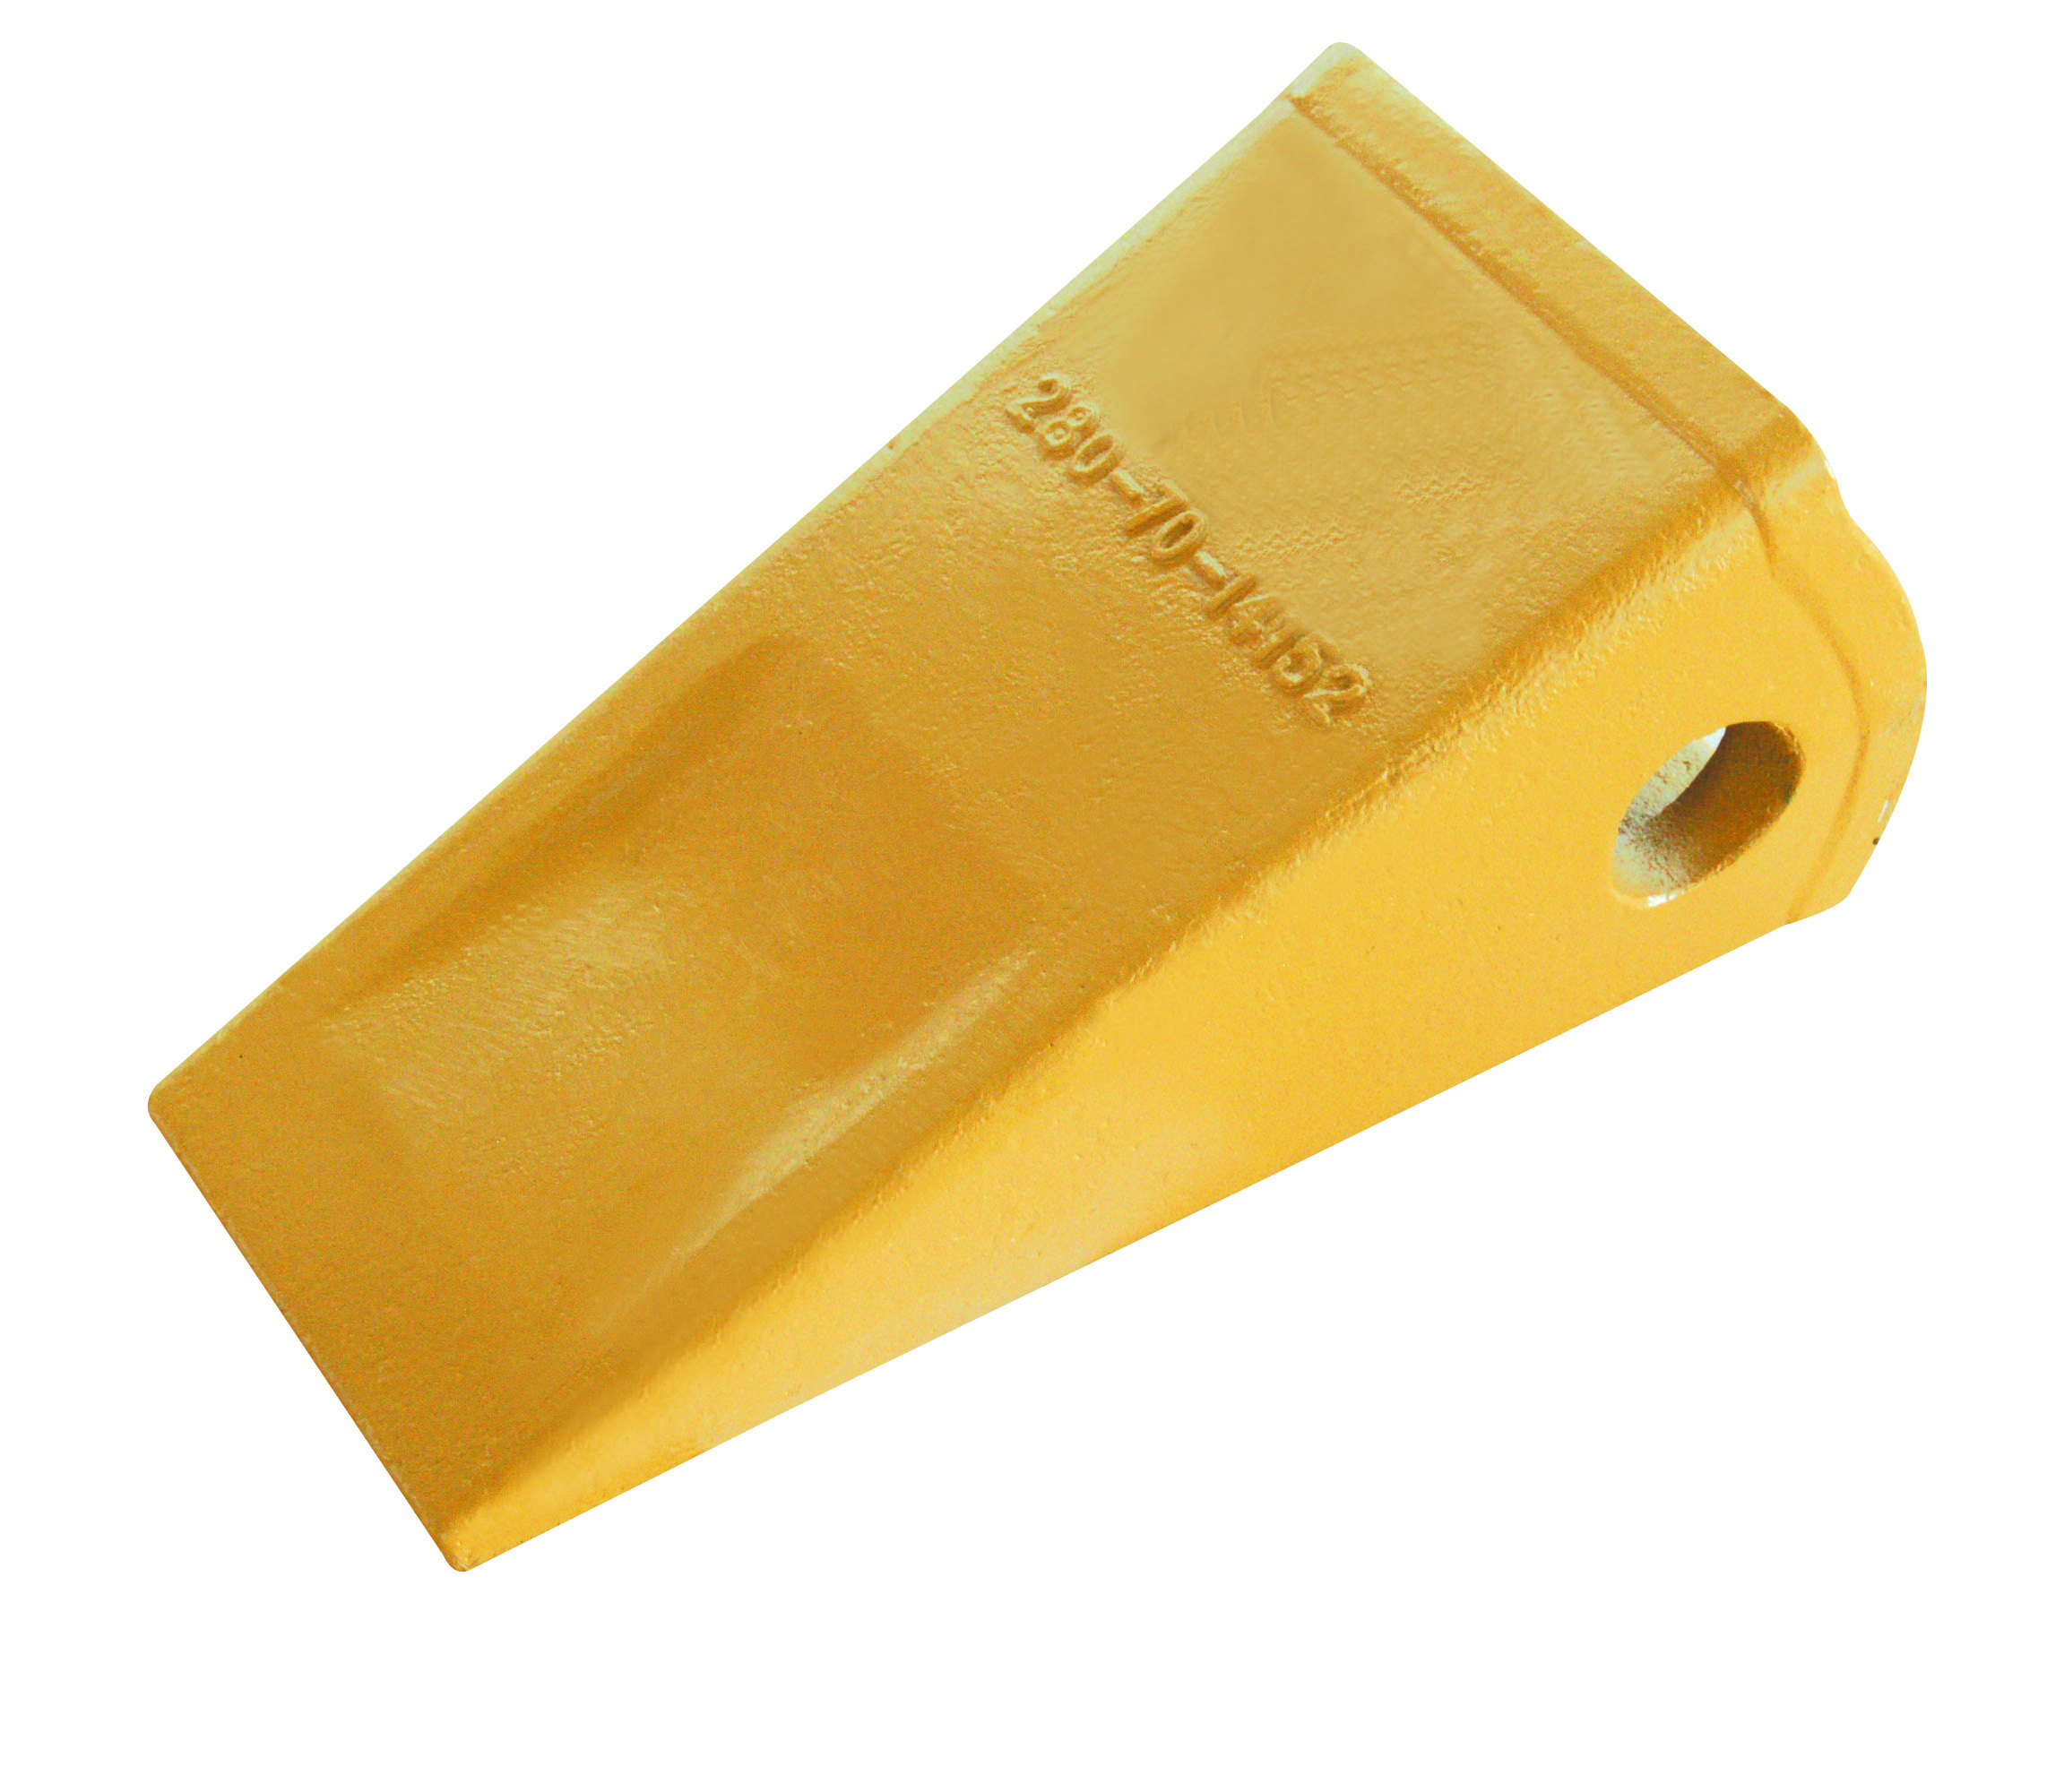 Komatsu PC400 bucket tooth tooth point series products